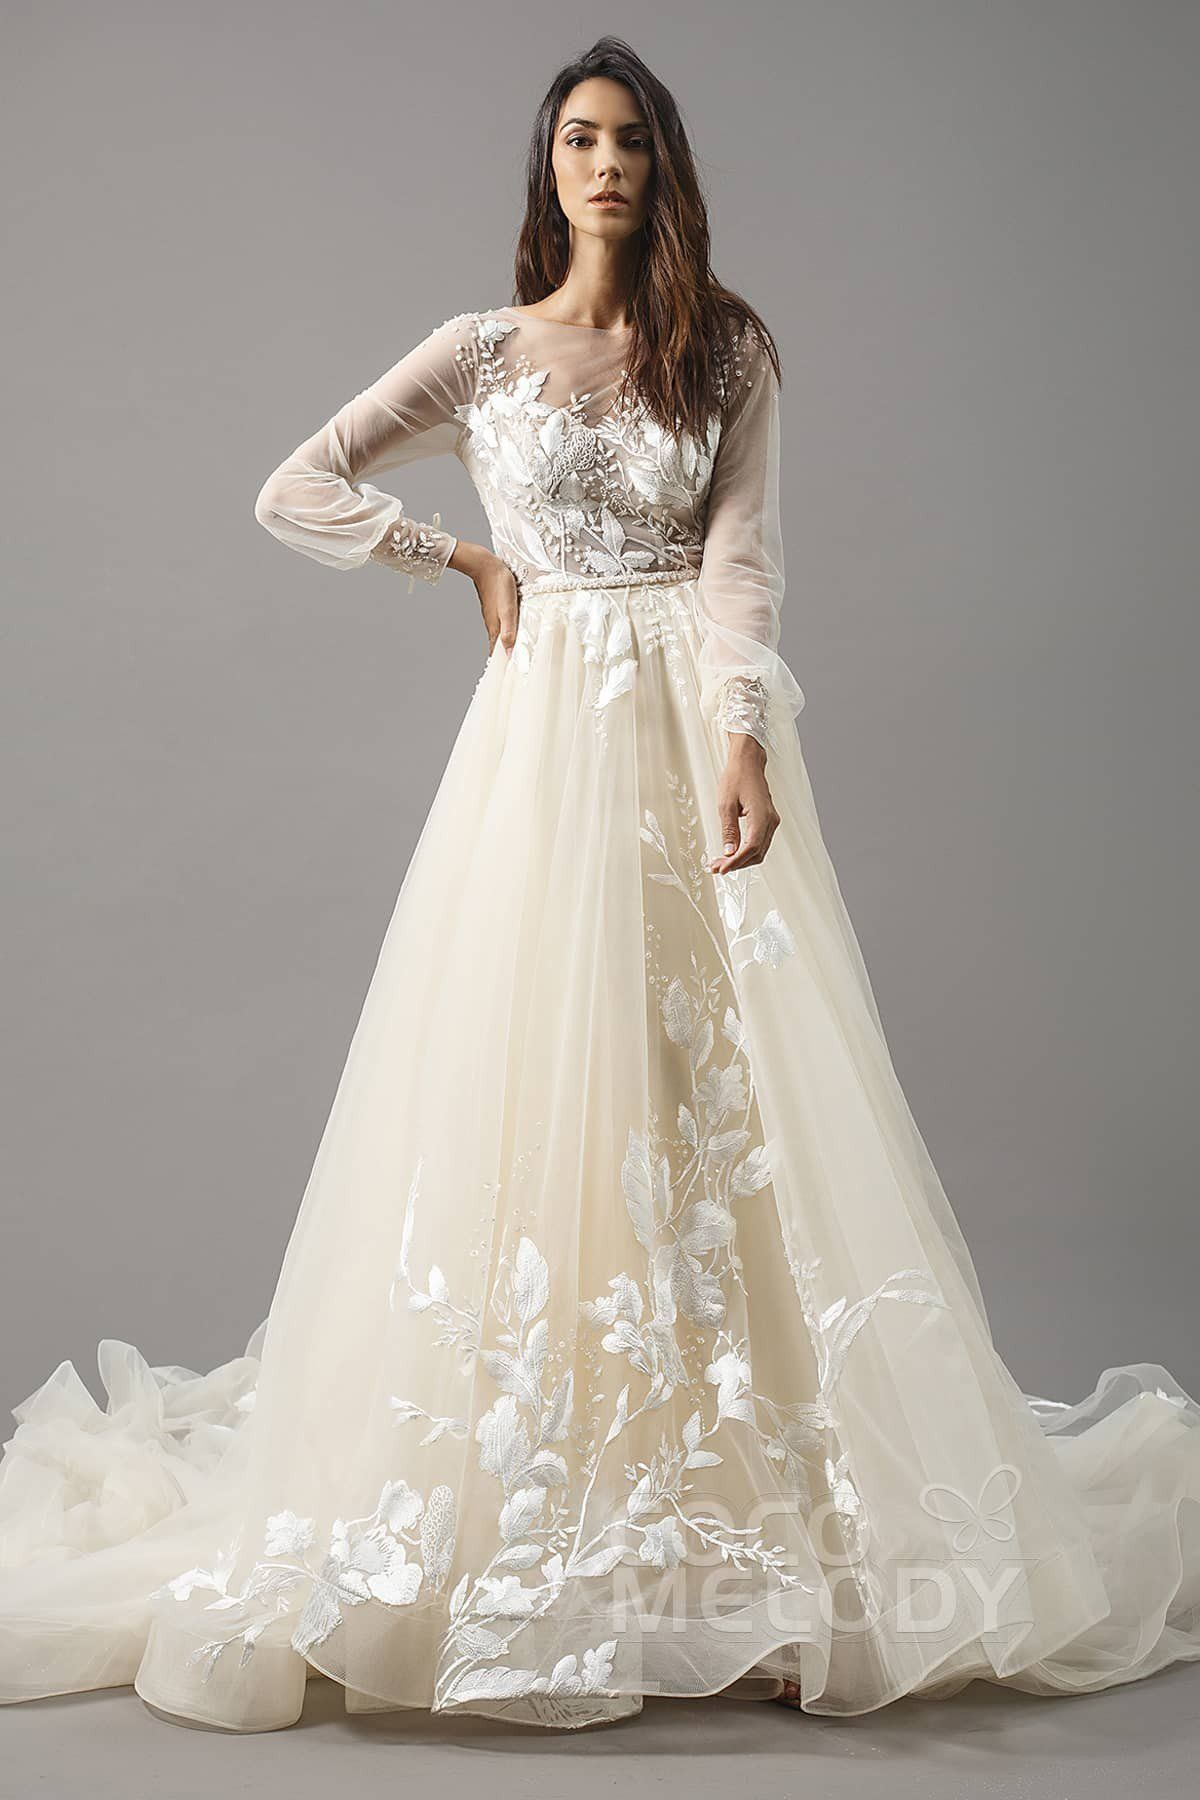 Wedding dress with long train  Luxurious ALine Illusion Natural Chapel Train Tulle IvoryChampagne